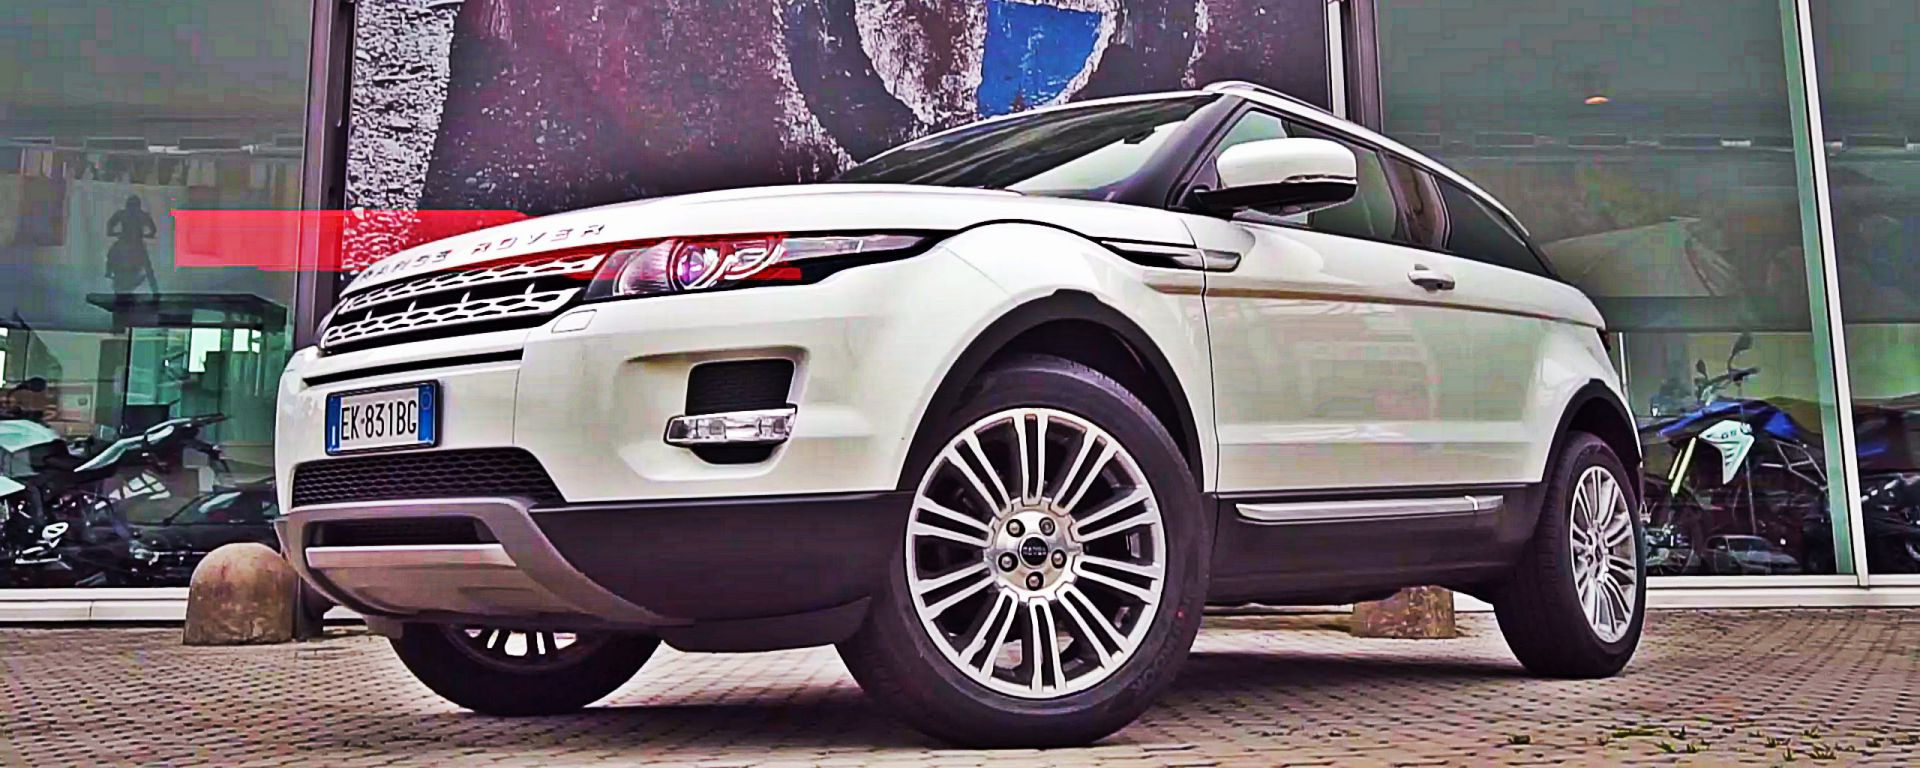 Range Rover Evoque: Check Up Usato [Video]